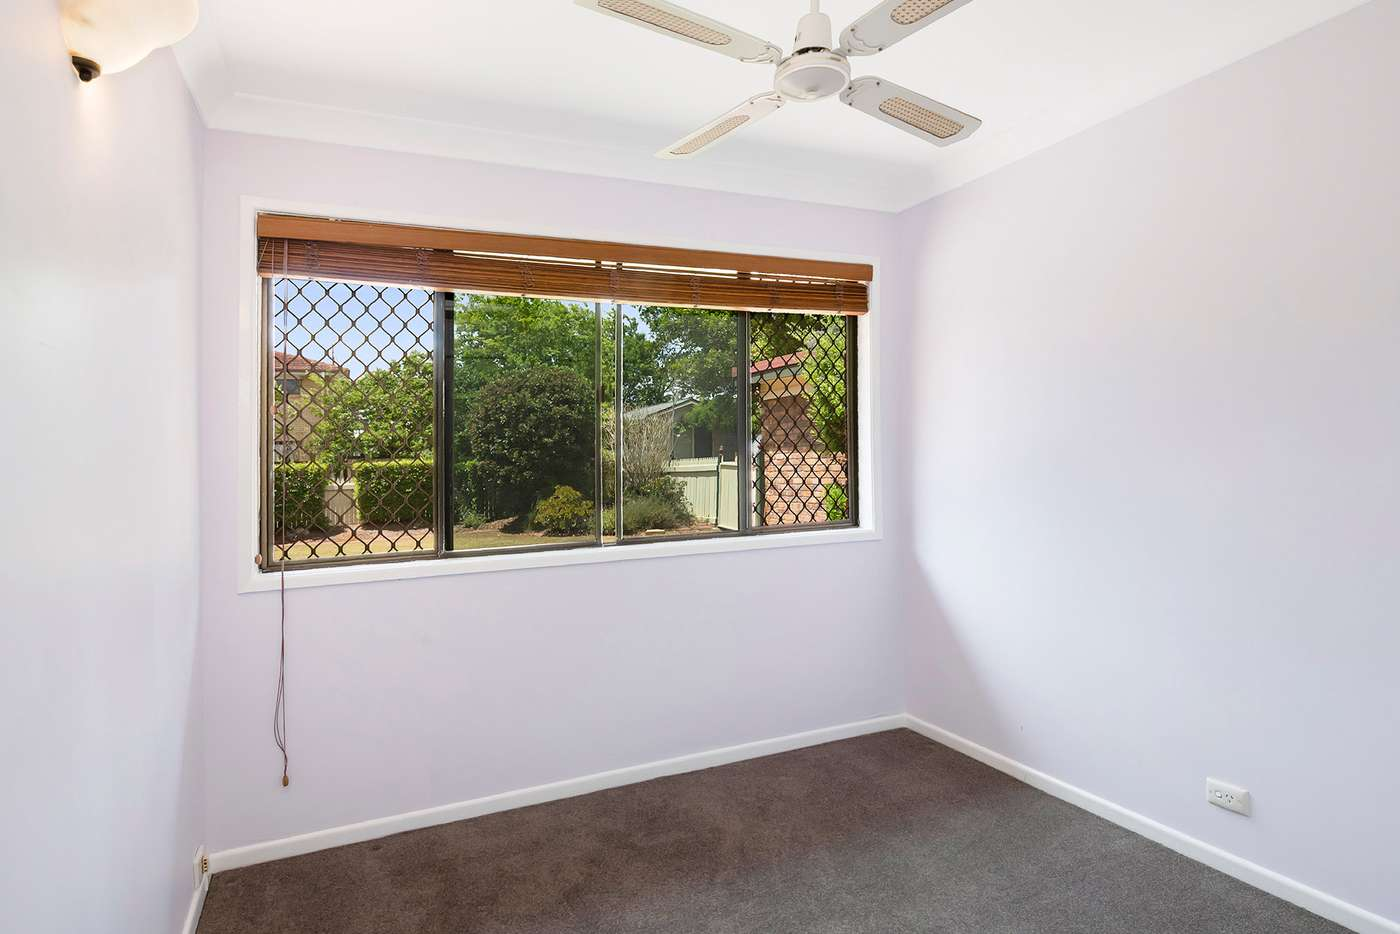 Sixth view of Homely house listing, 23 Cranberry Street, Eight Mile Plains QLD 4113